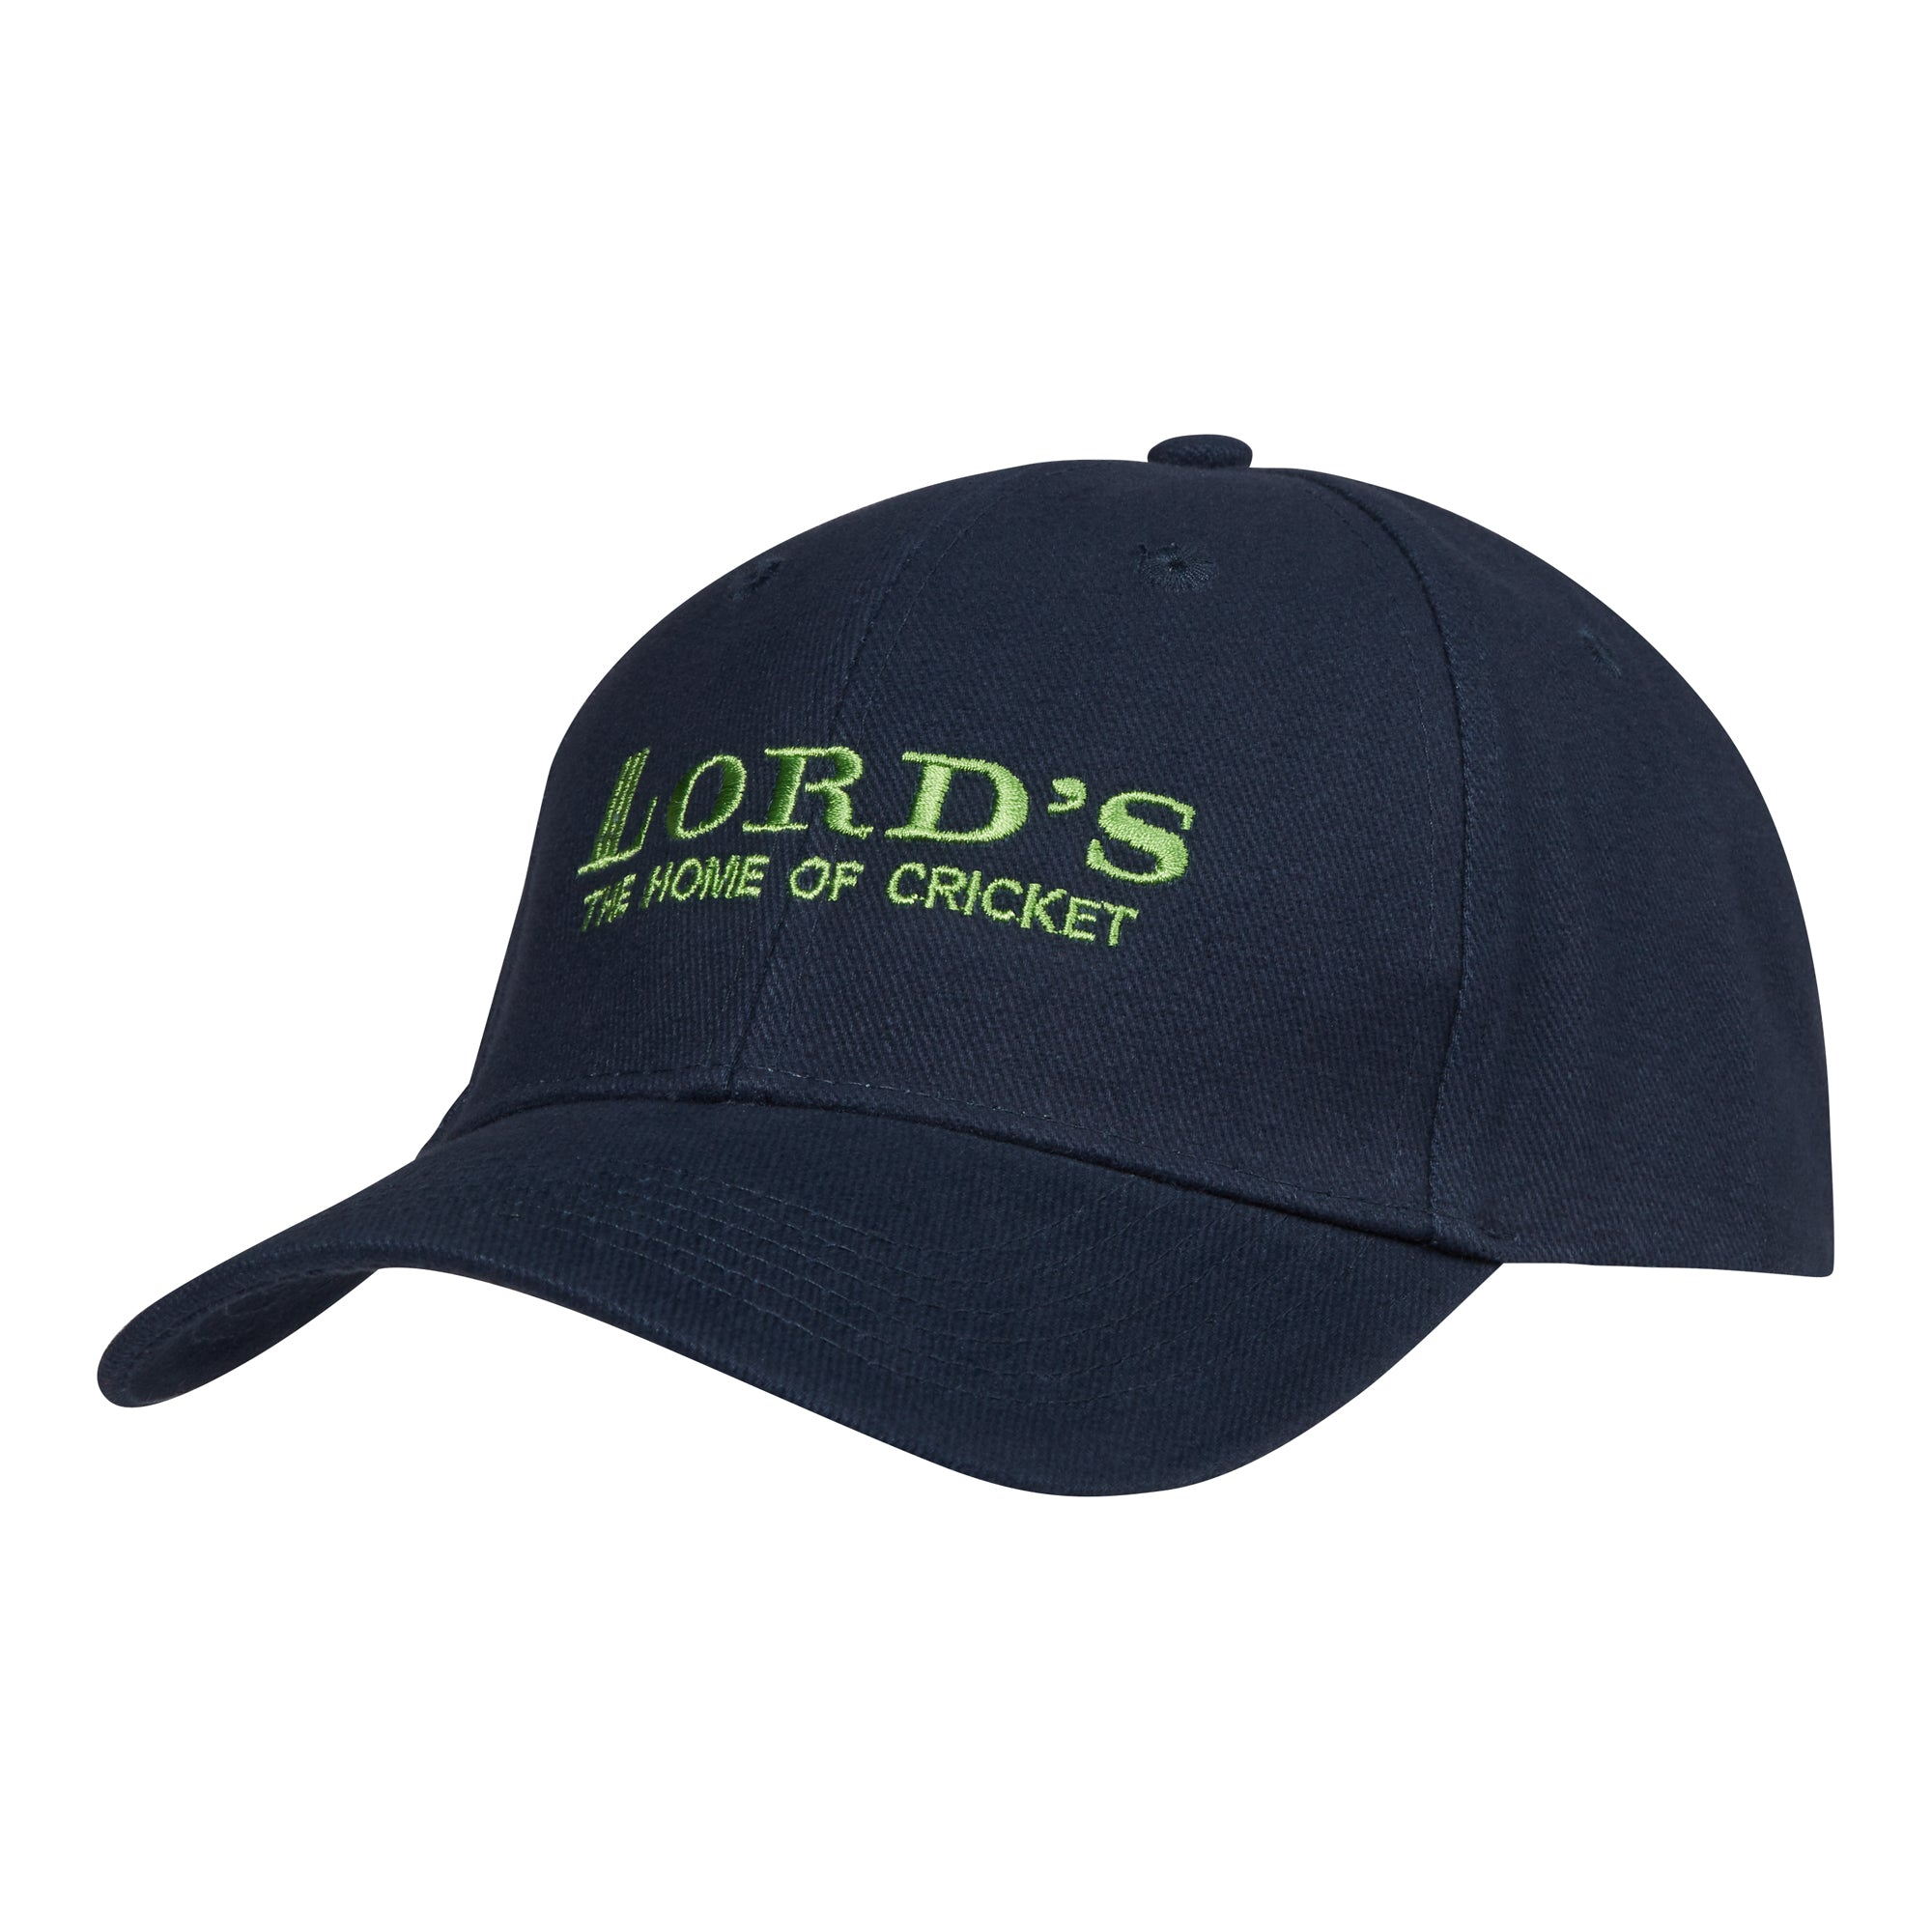 LORD'S ADULT CLASSIC CAP NAVY/GREEN